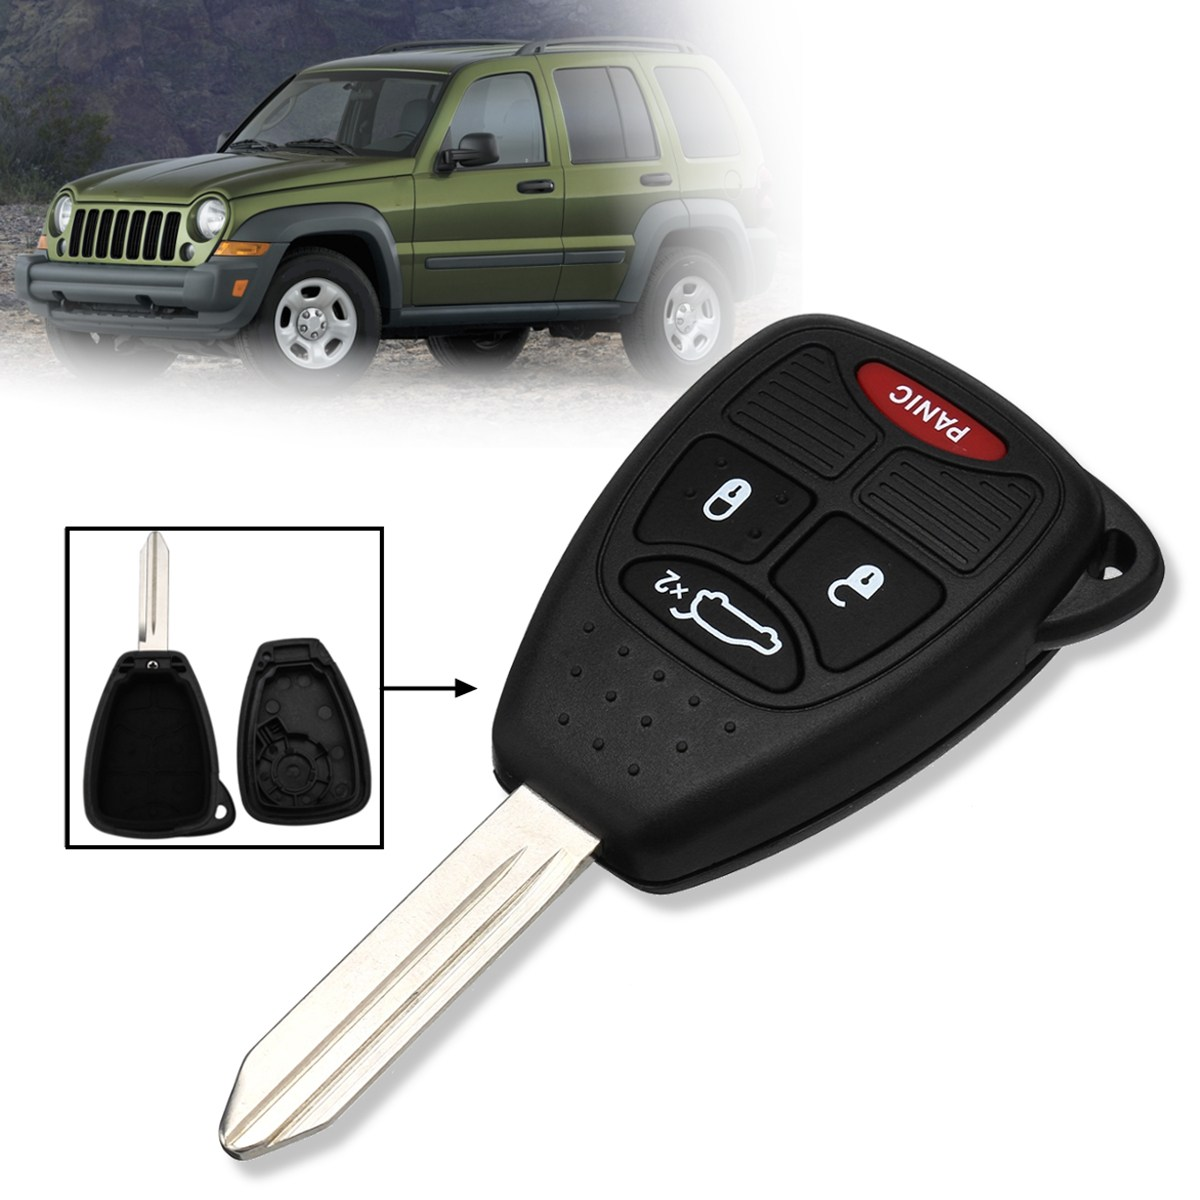 4 Buttons Open Lock Trunk Panic Car Remote Key Fob Case Shell Replacement For Jeep Liberty 2005 2006 2007